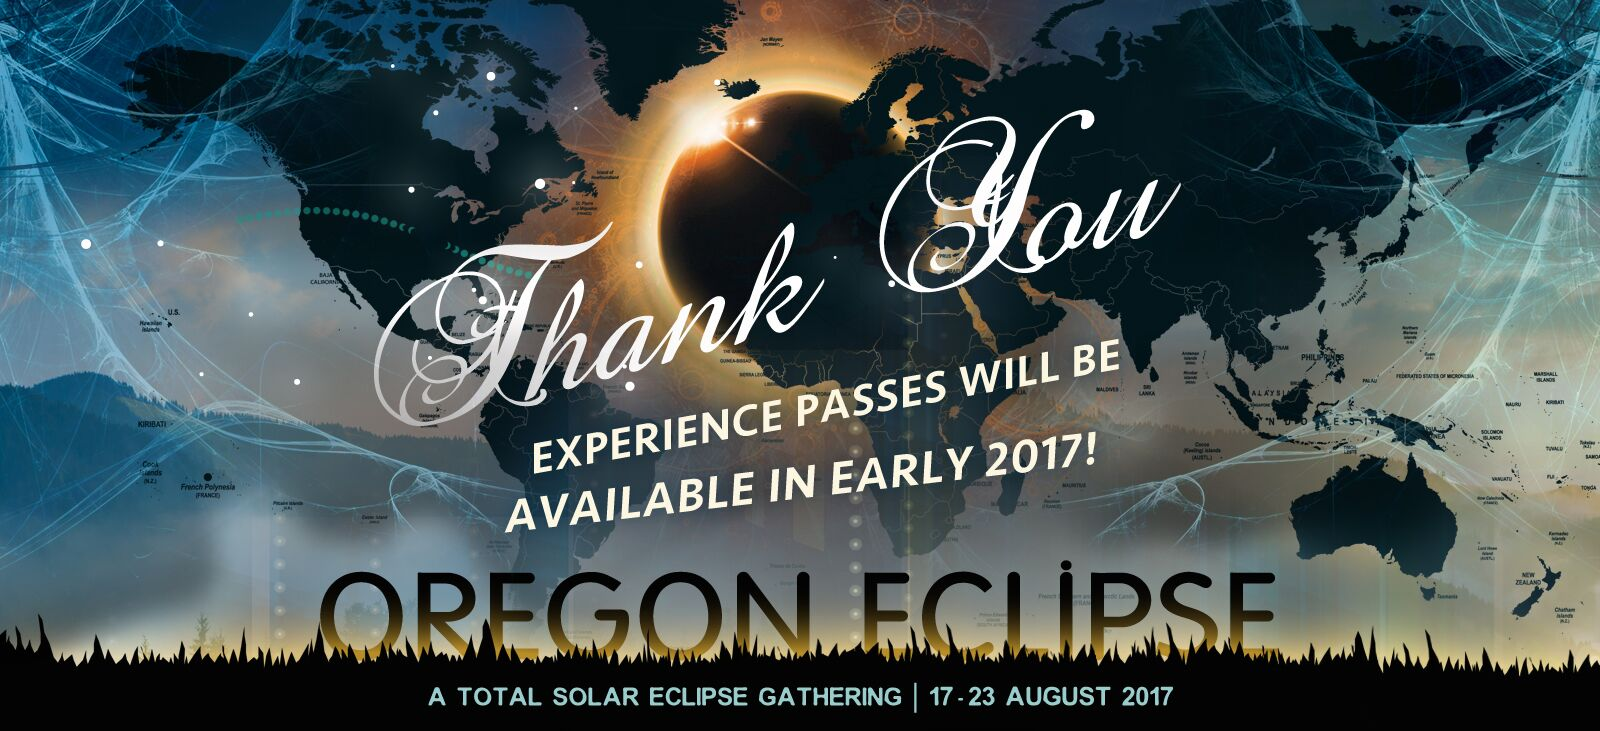 Experience Passes On Sale Again in 2017